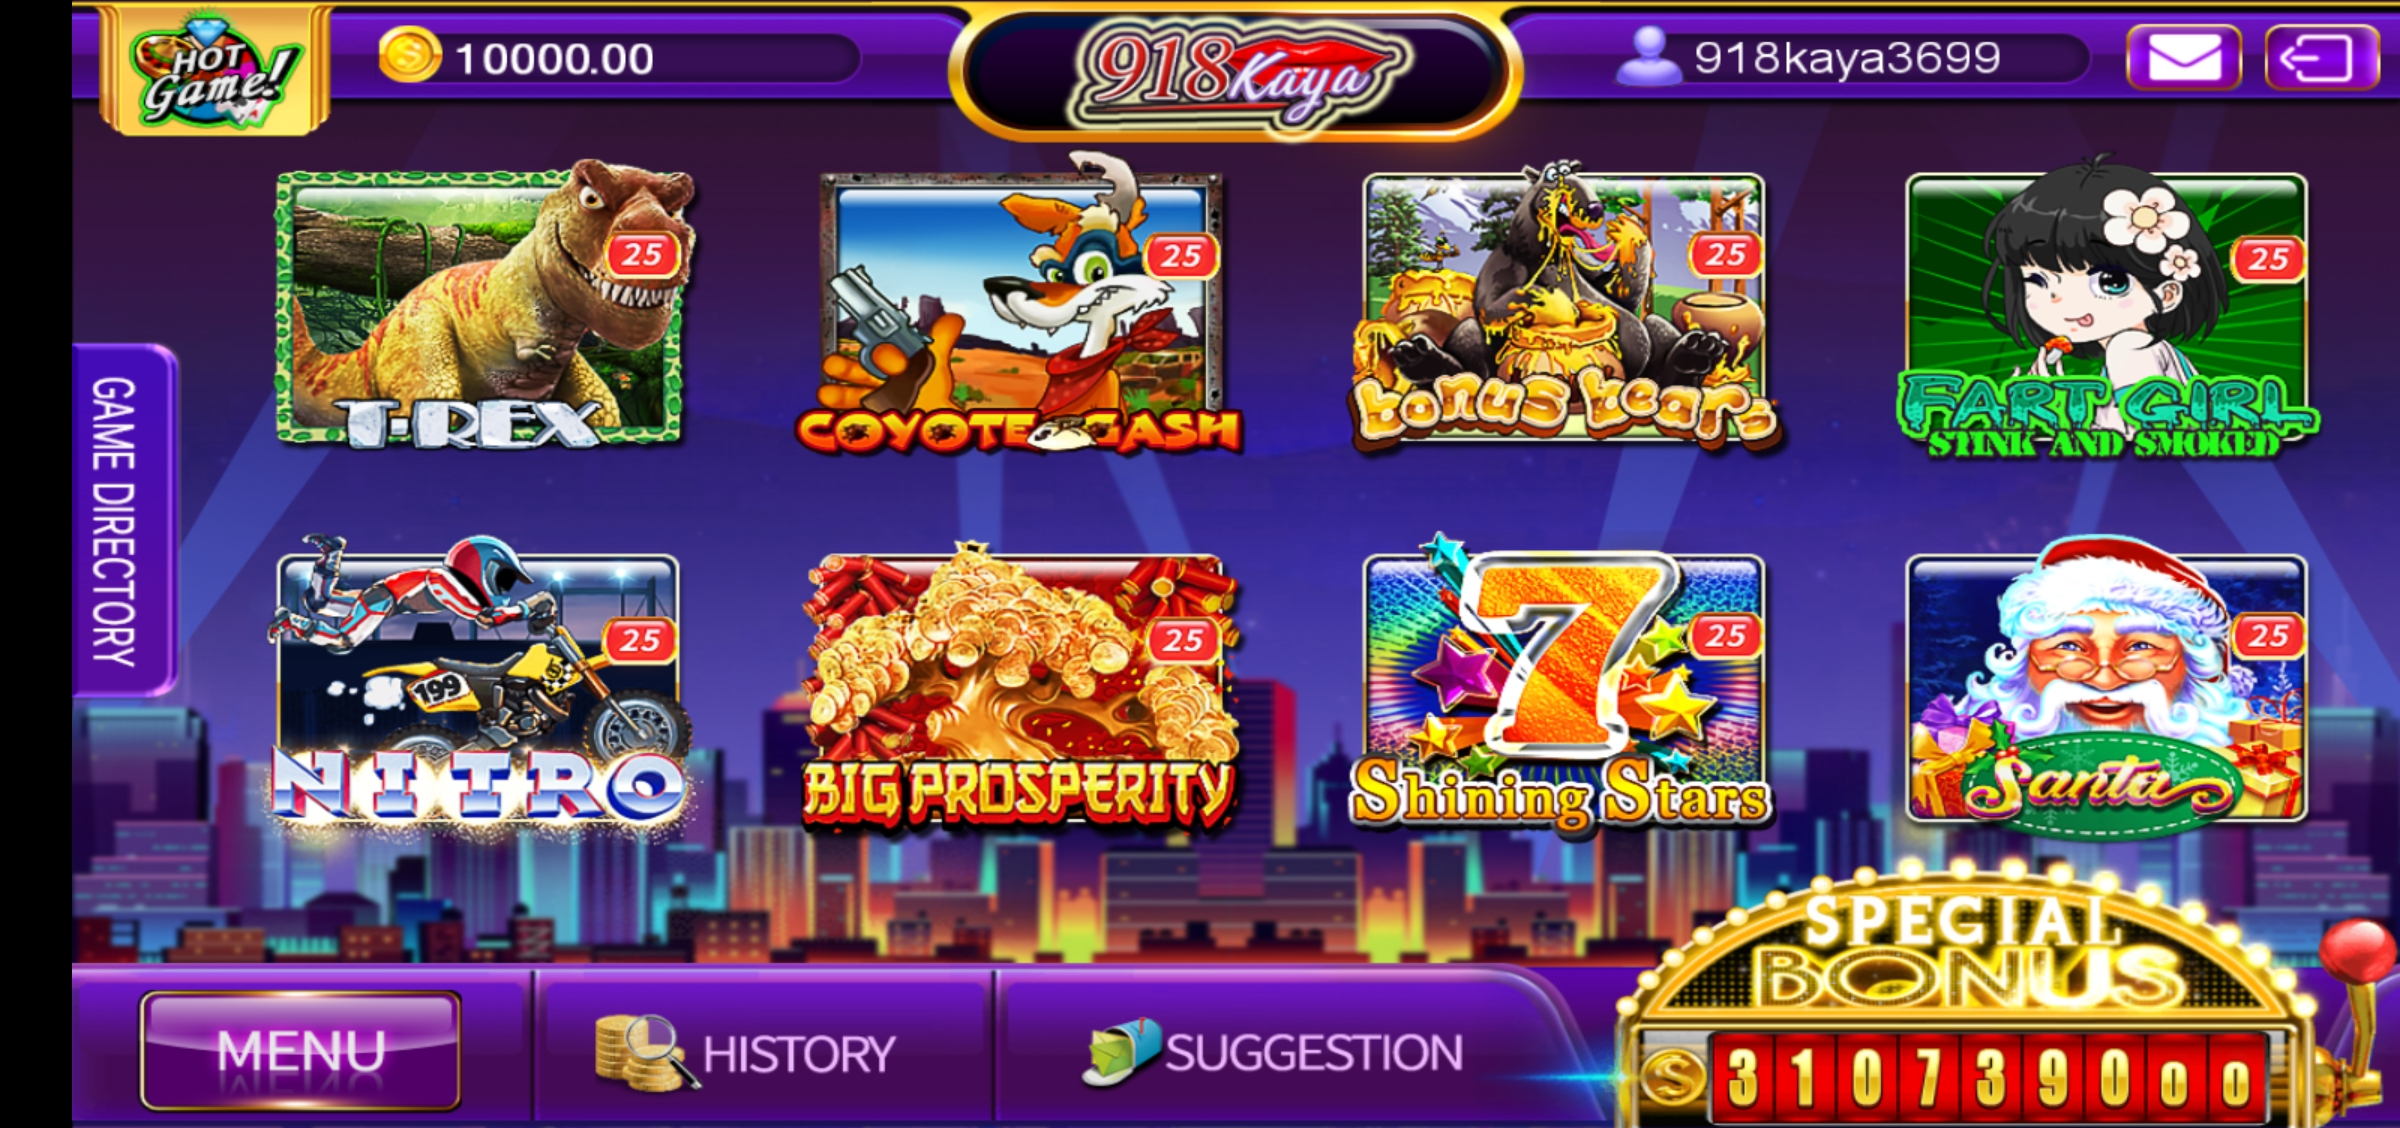 Real money online casinos that accept paypal